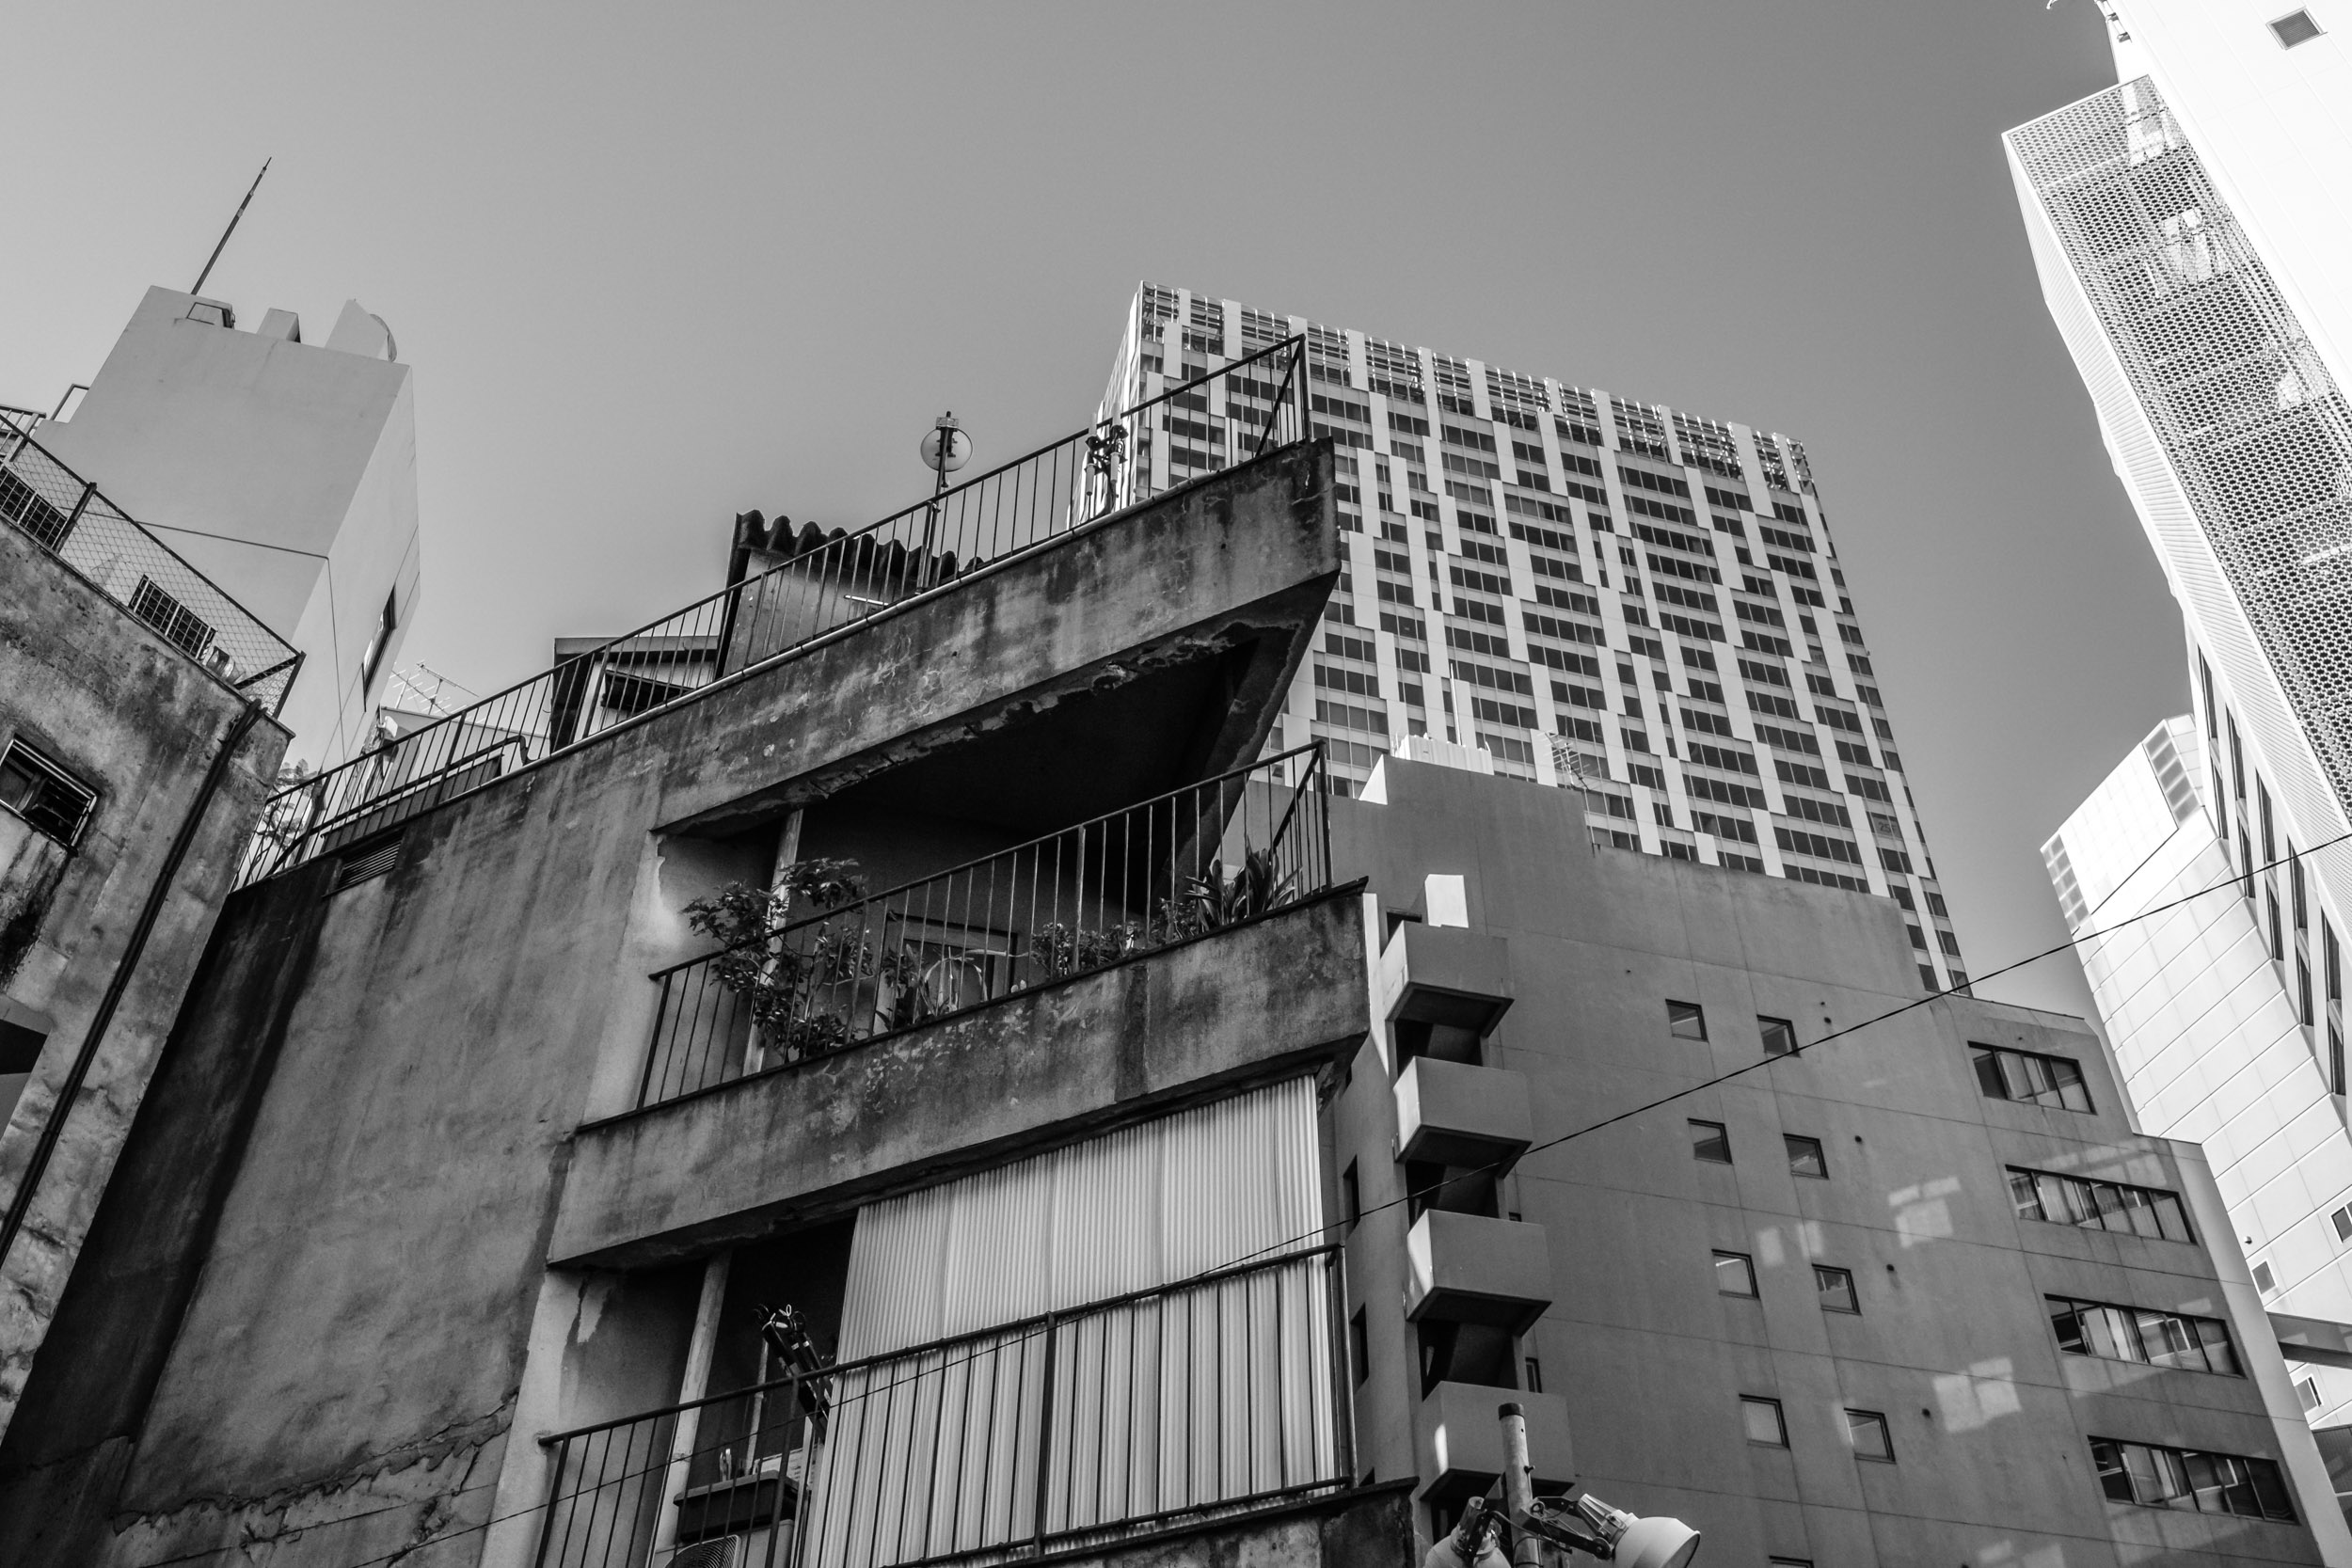 Old and new in Shibuya